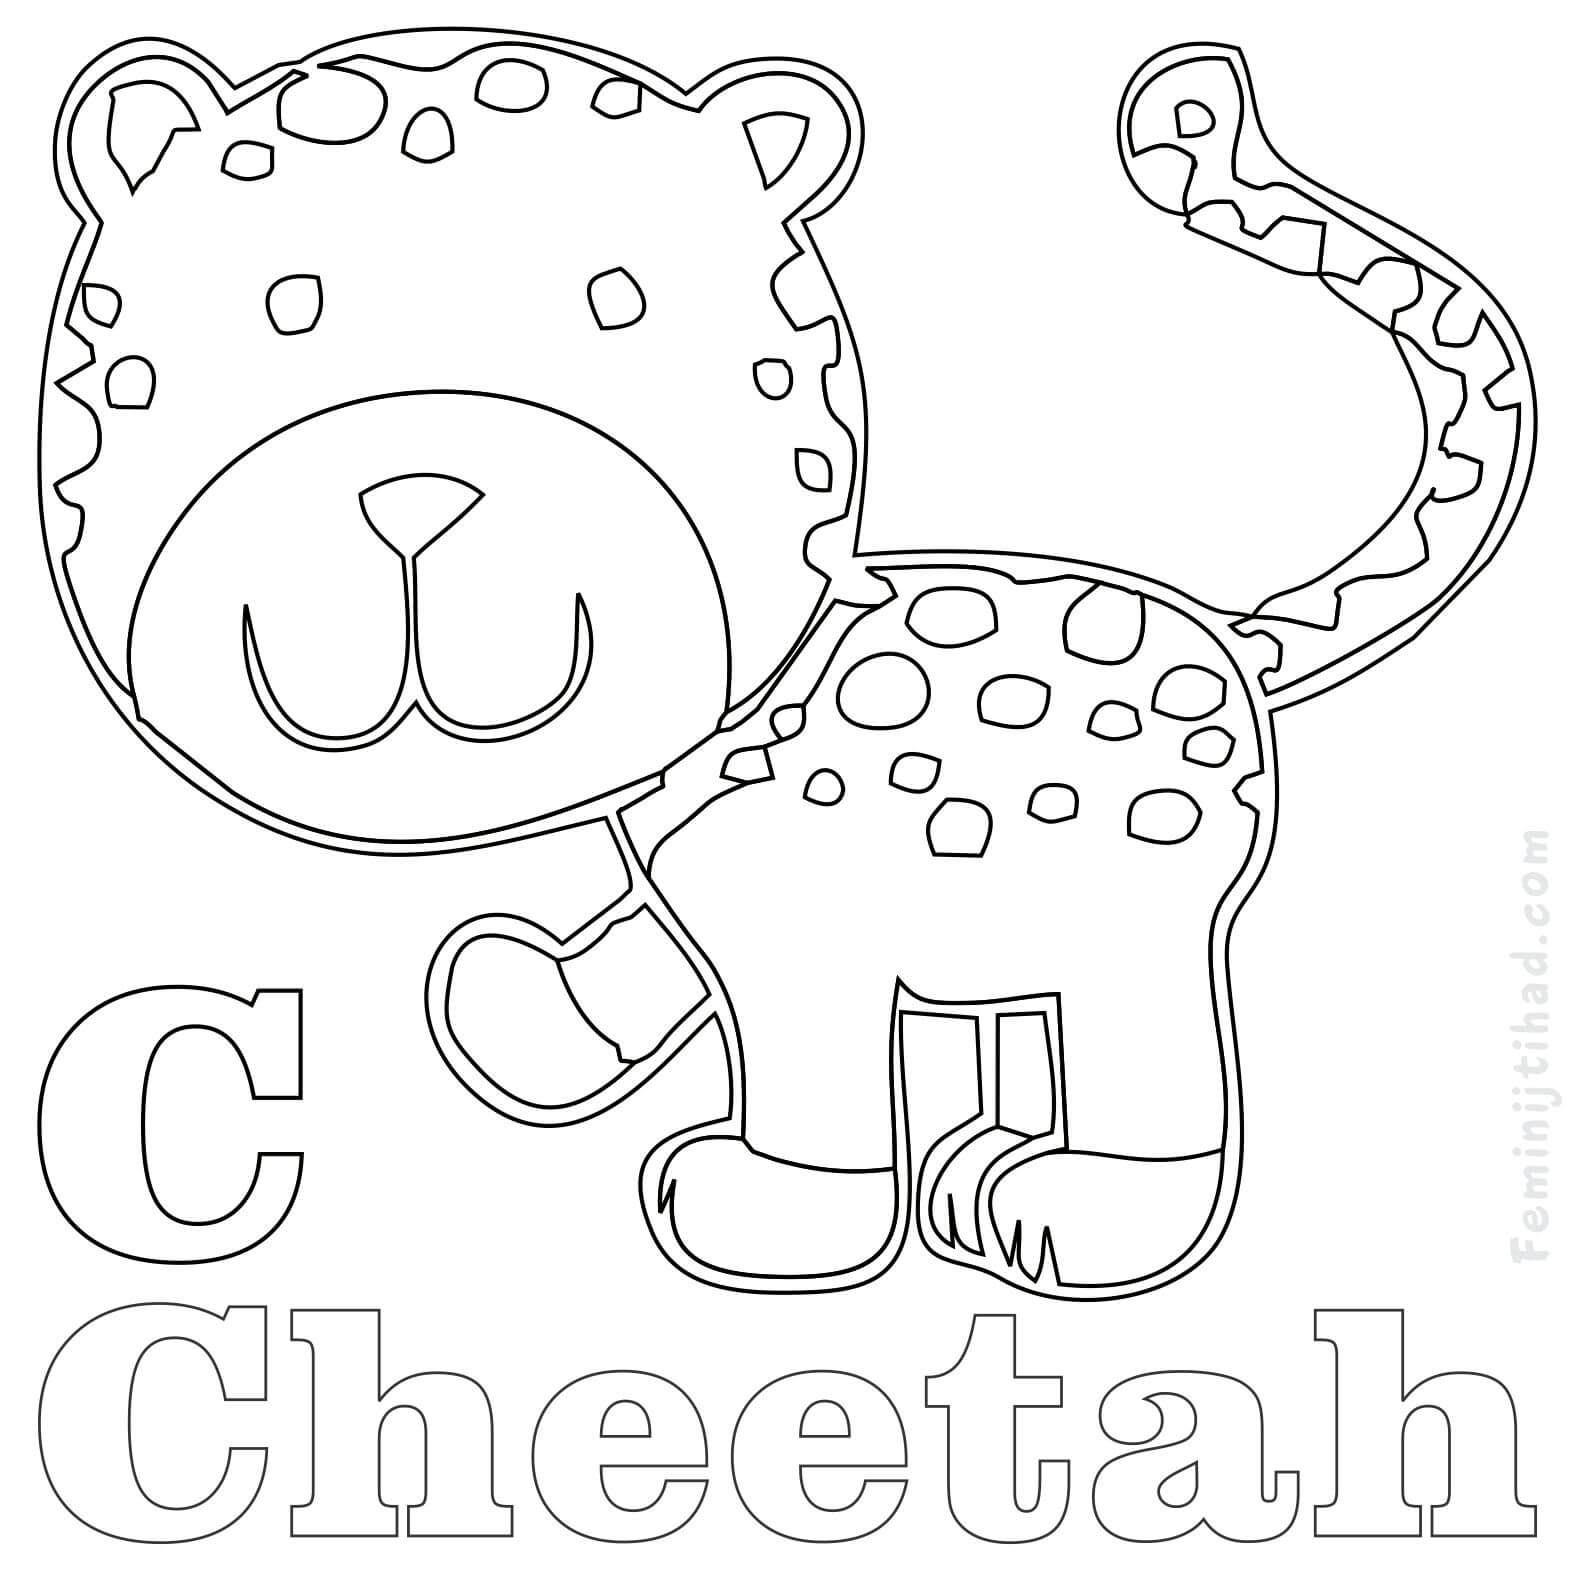 1575x1575 Cheetah Coloring Pages Collection Coloring Pages For Kids